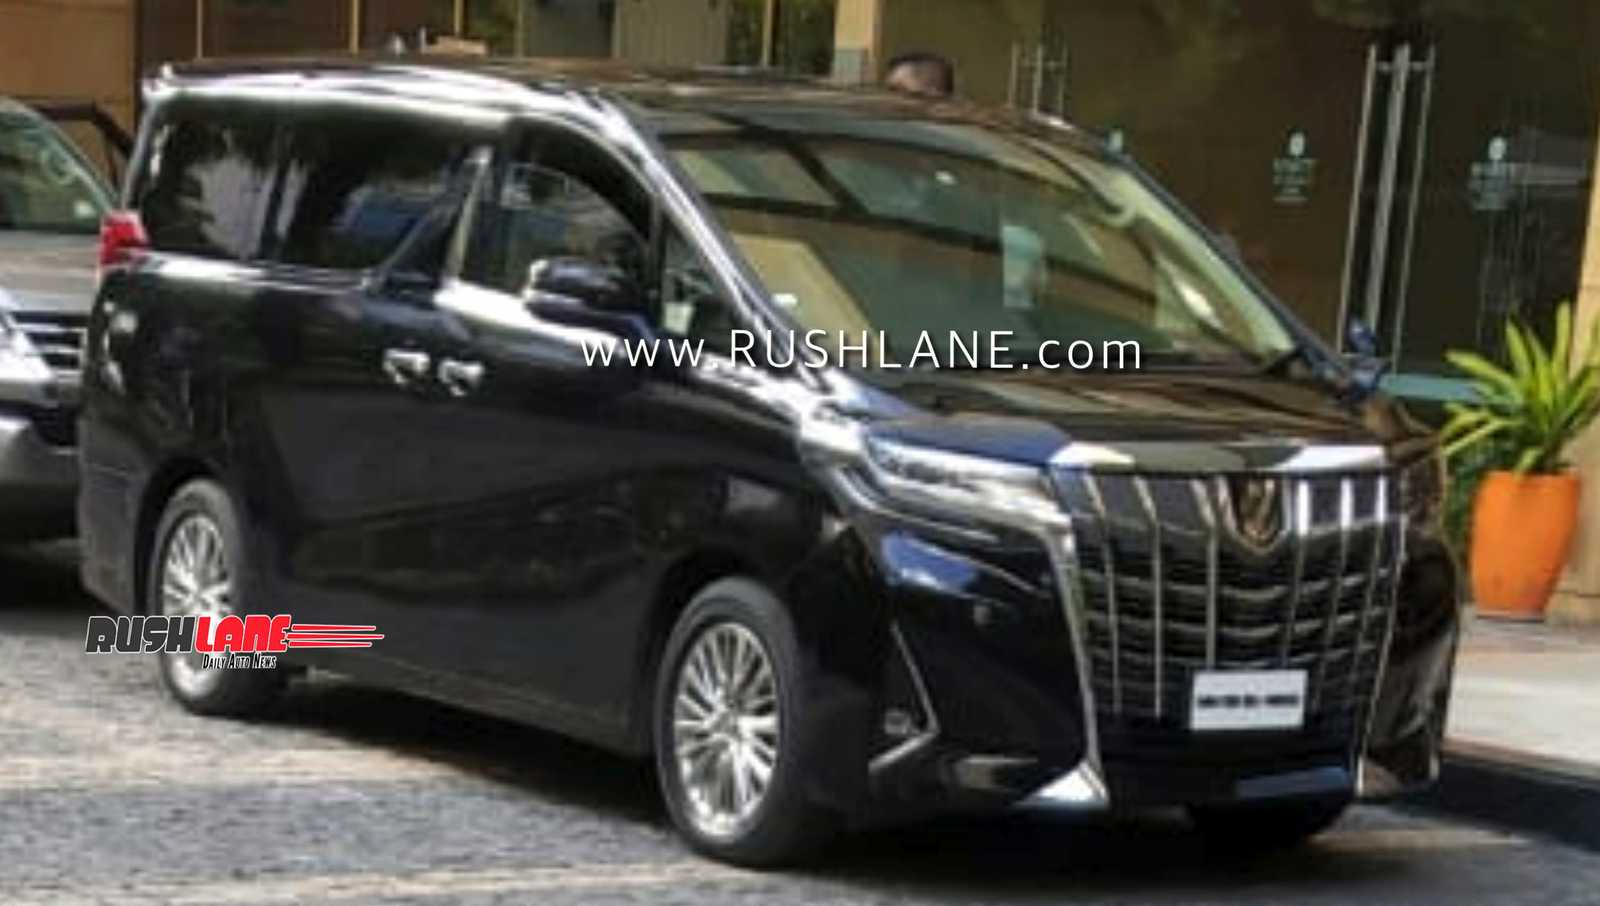 Toyota Alphard (Vellfire) spied along with Fortuner in Pune